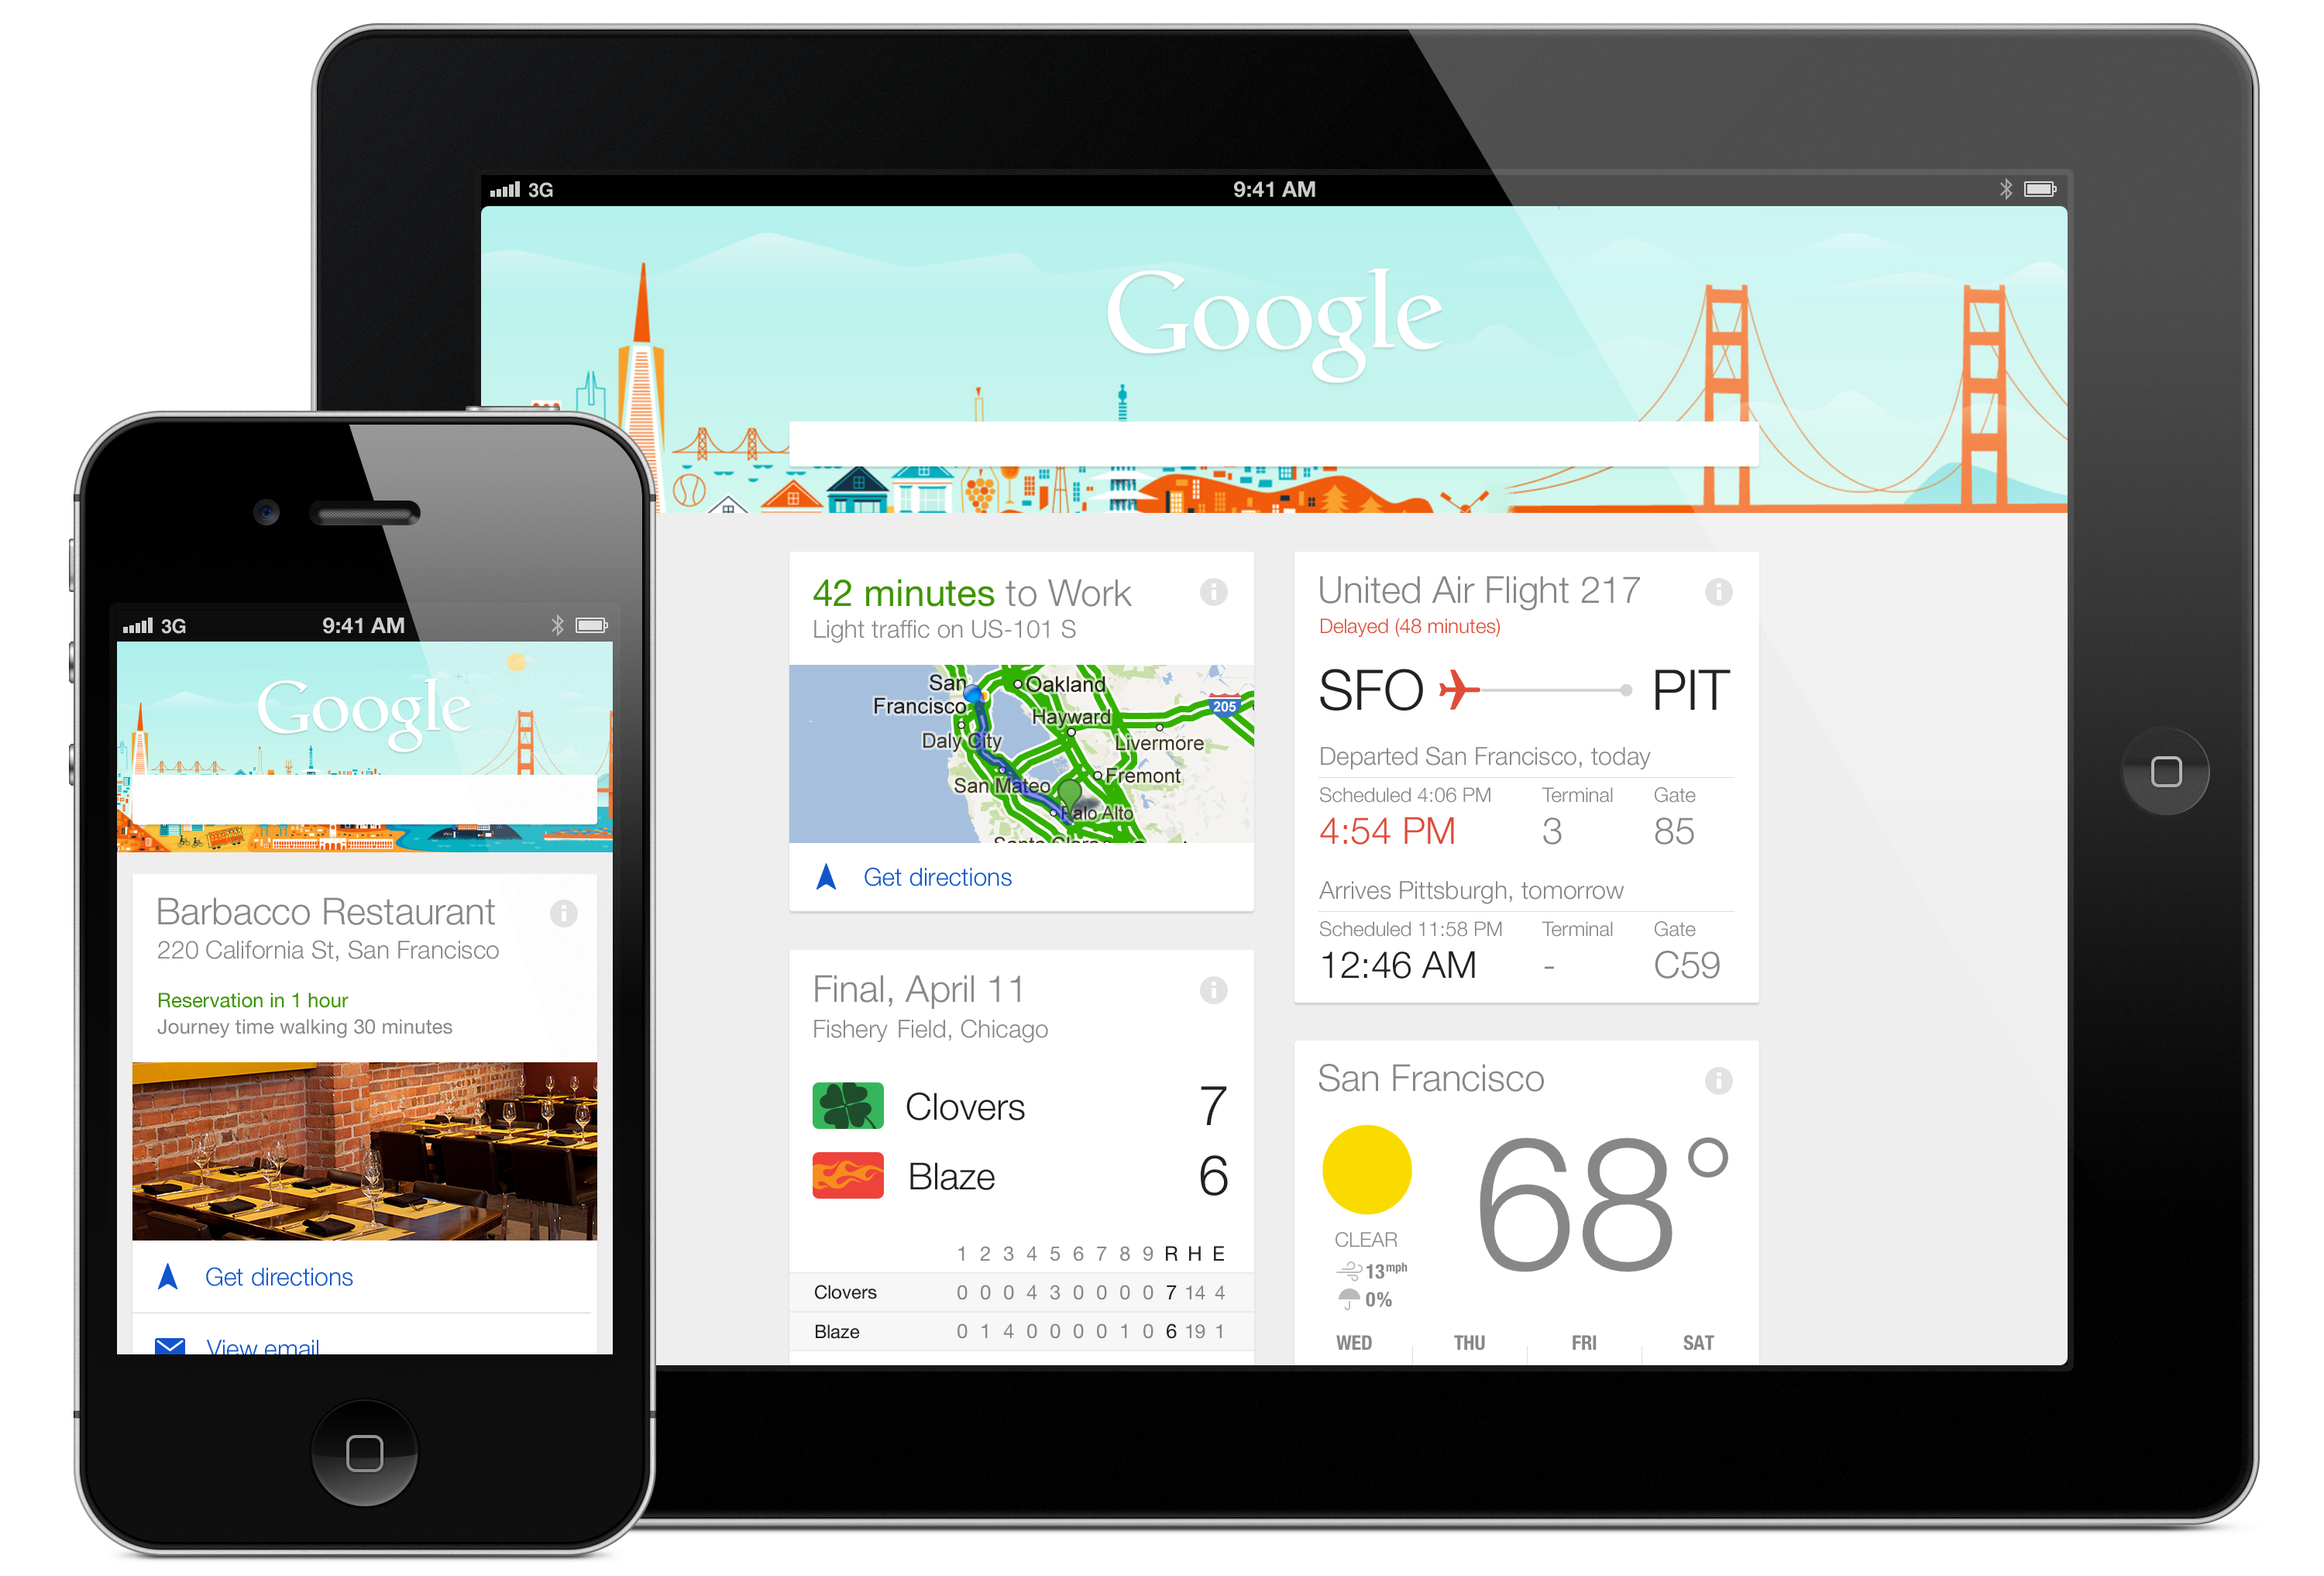 Google Now Arrives on iPhone and iPad, in Mostly Complete Form